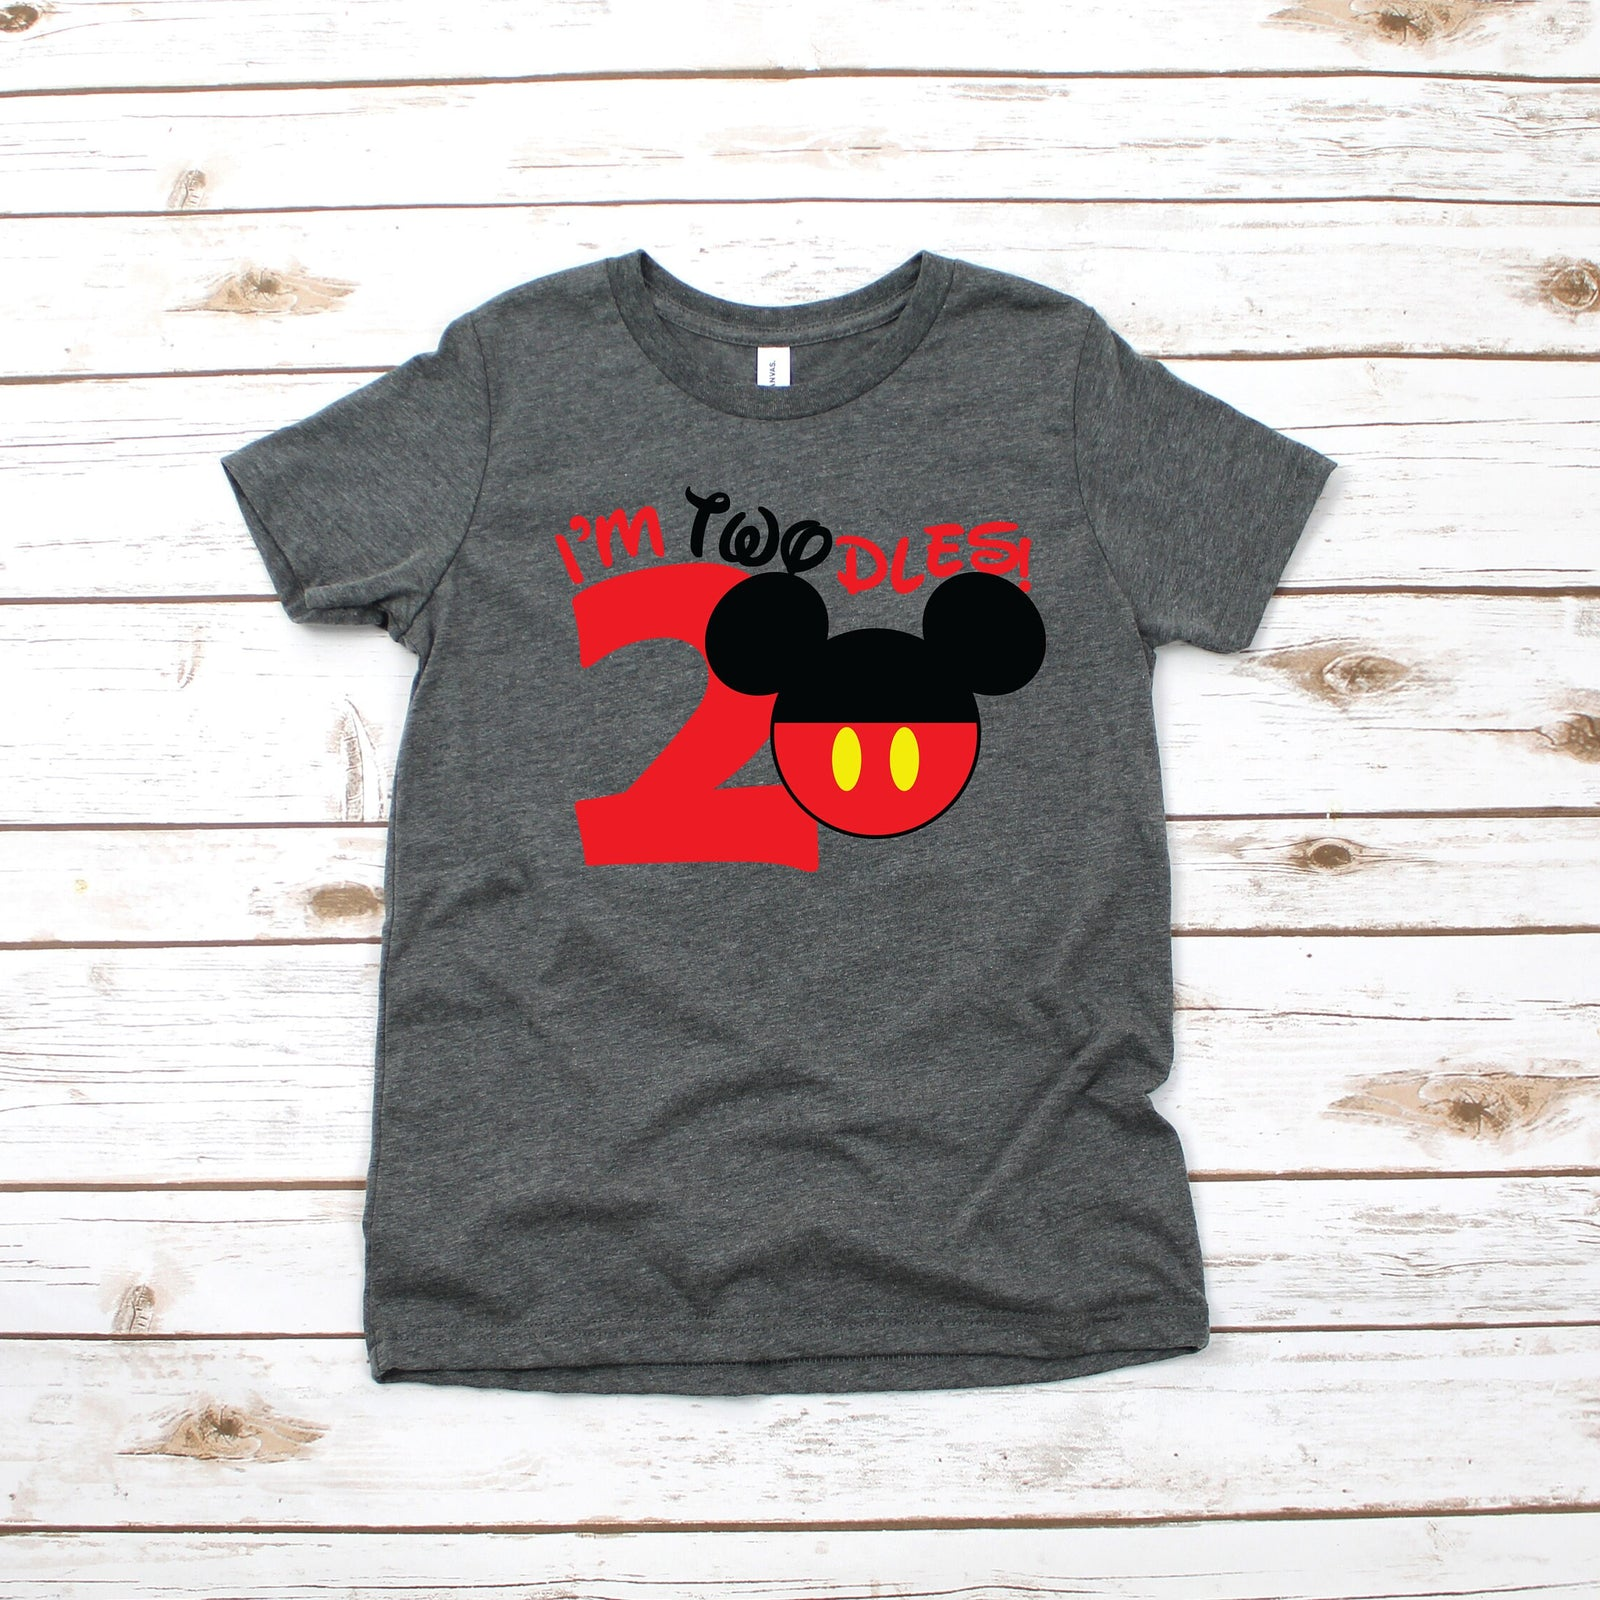 I'm Twodles Mickey T Shirt - Turning Two Disney Shirt - Mickey Birthday Party